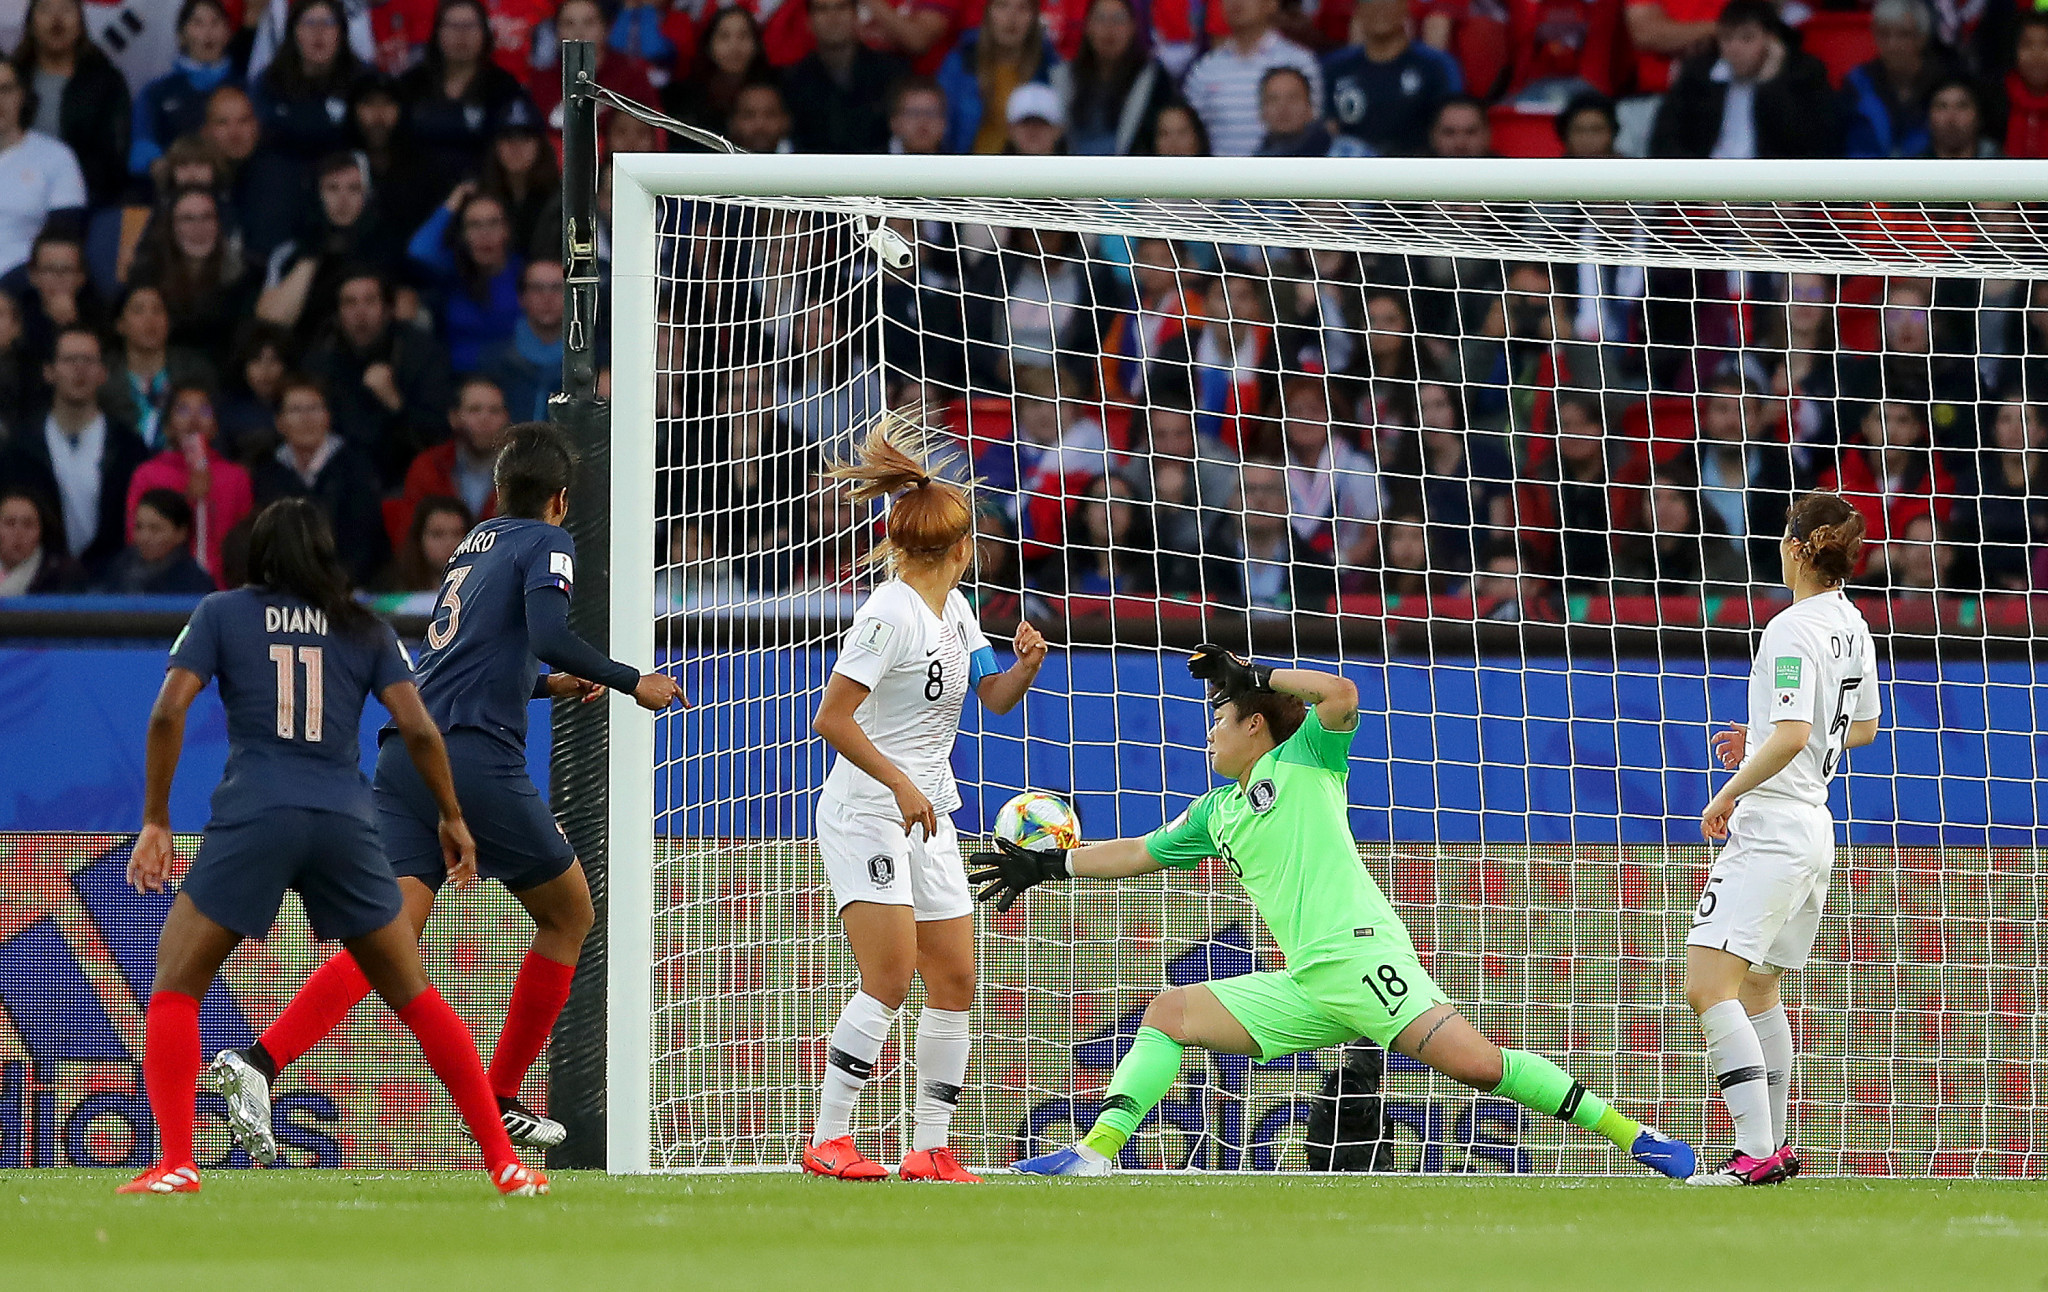 Renard heads home twice in French demolition of South Korea at 2019 FIFA Women's World Cup